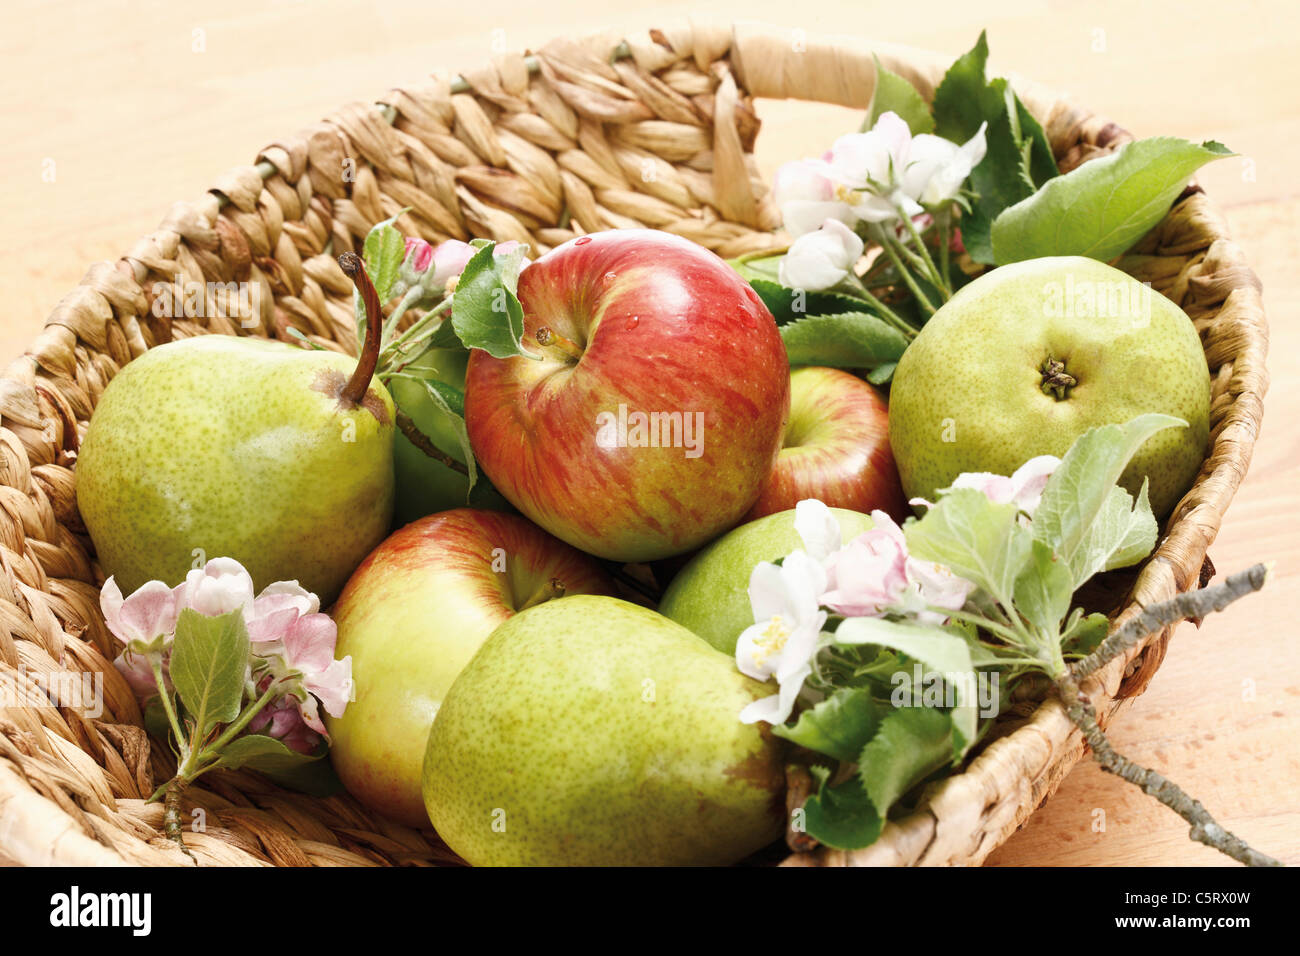 Apples, Pears and blossoms in basket, elevated view - Stock Image